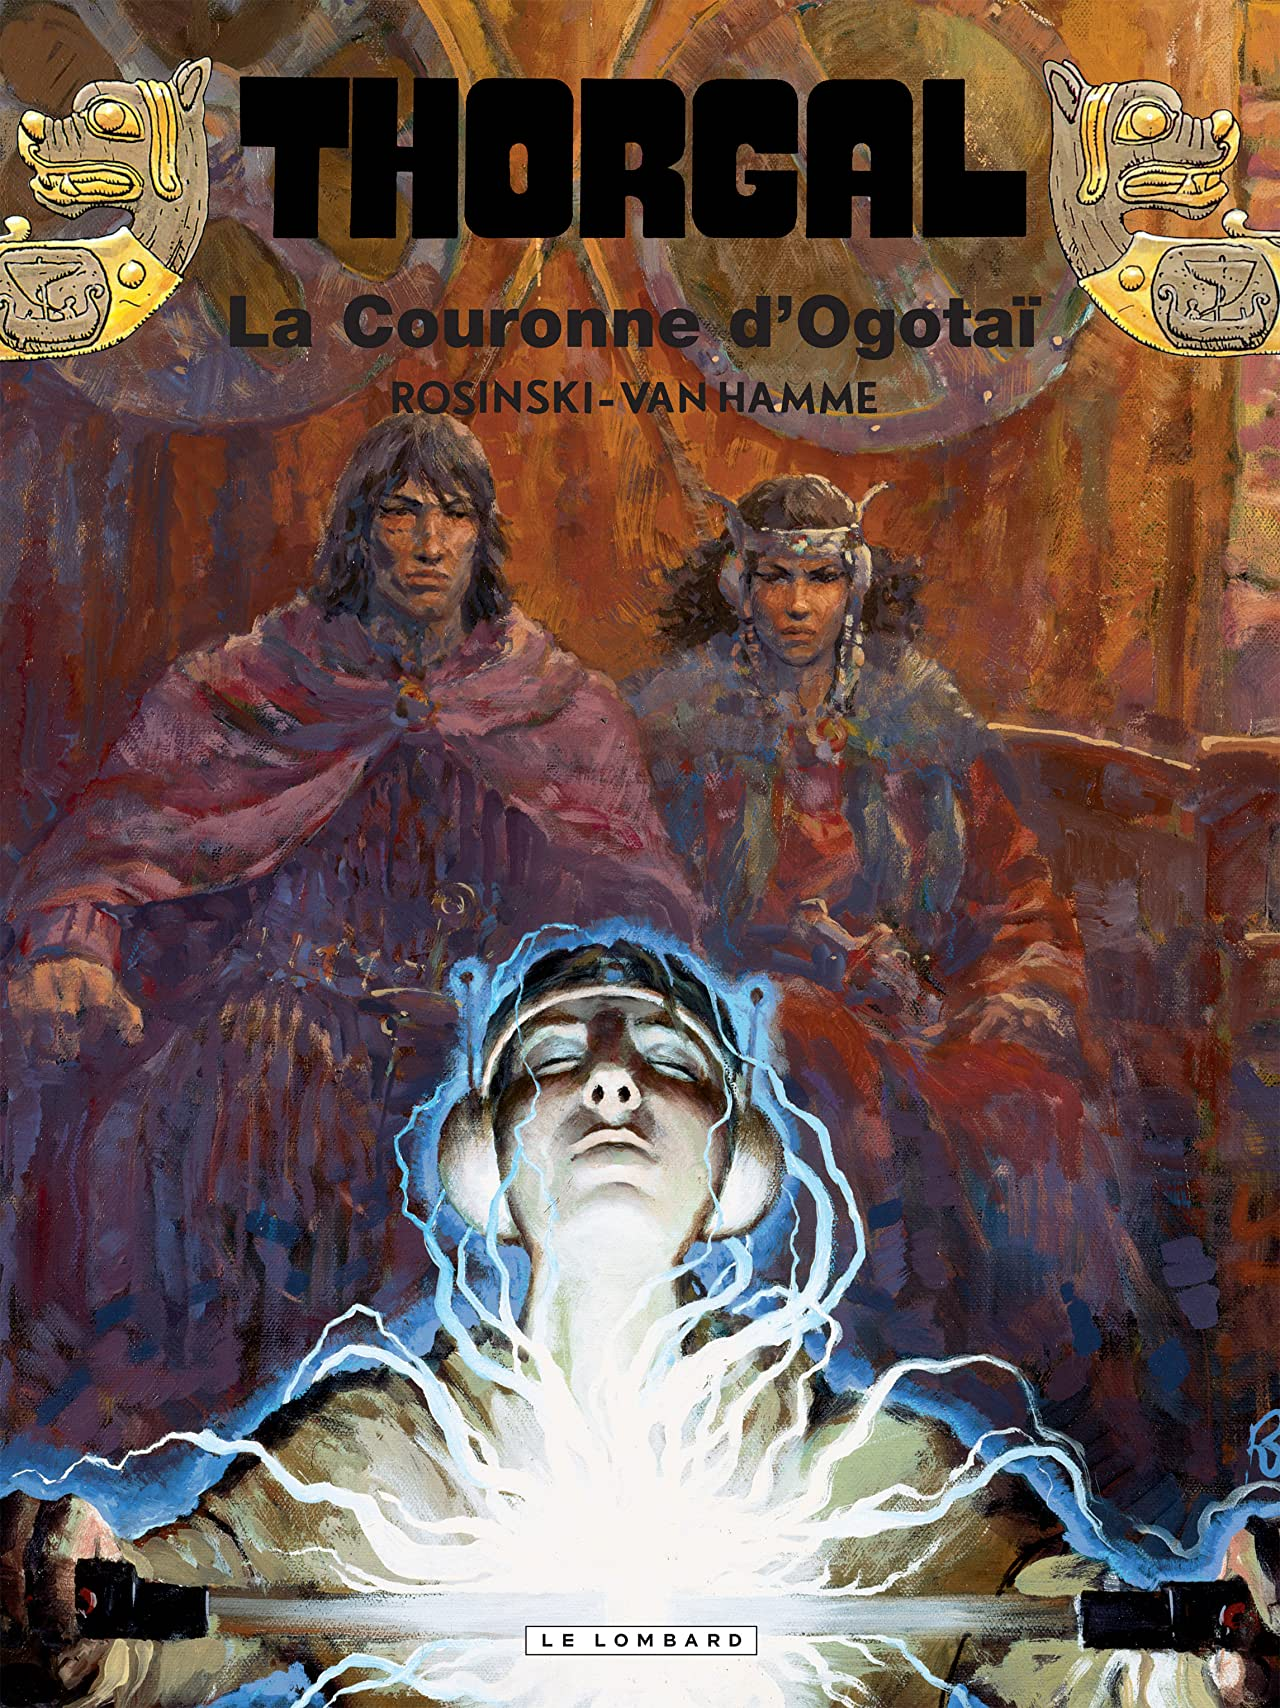 Thorgal Vol. 21: La Couronne d'Ogotaï